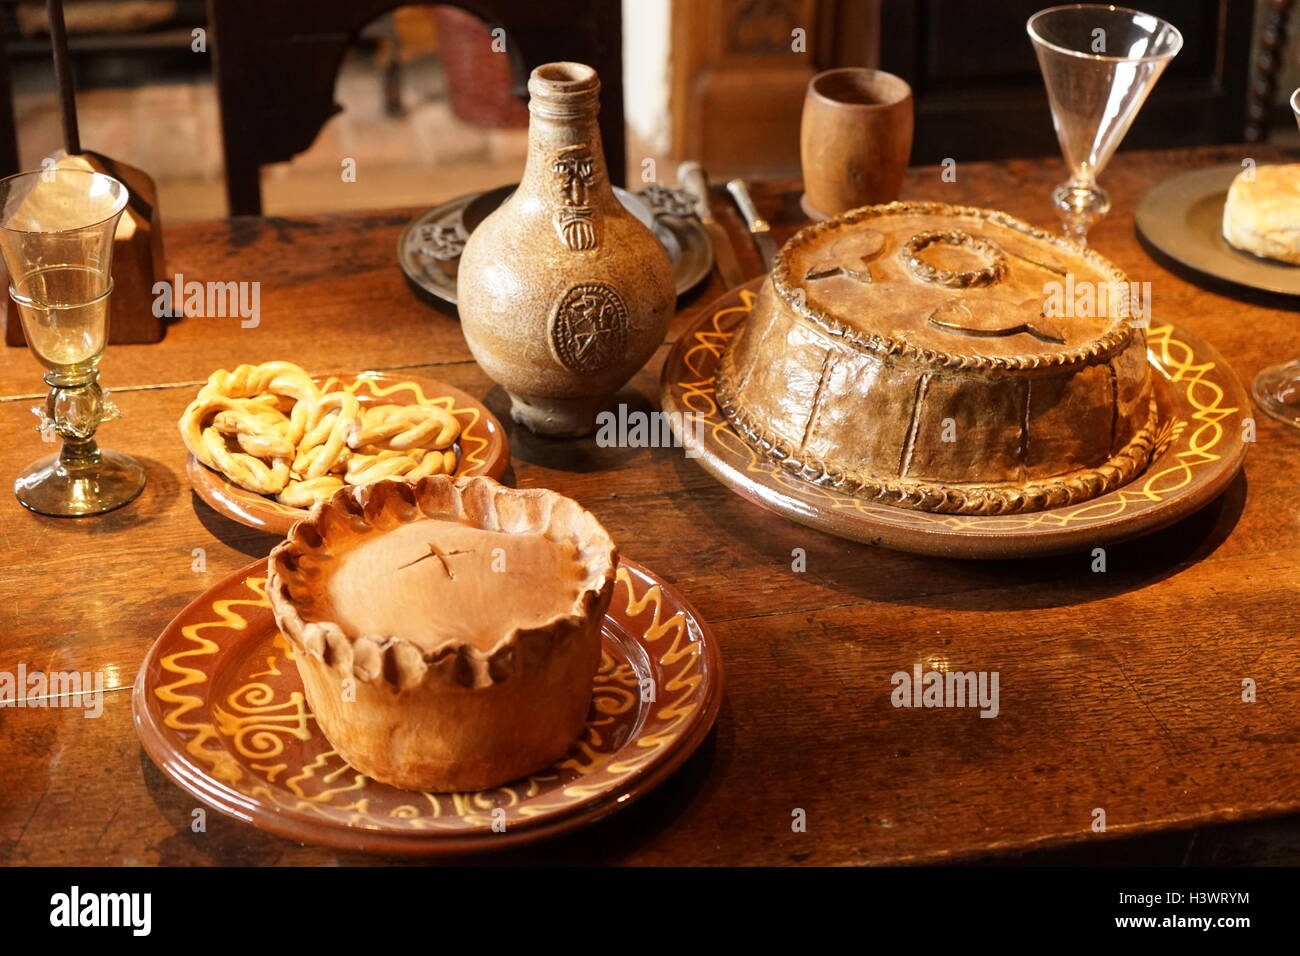 Elizabethan dining table set with typical foods - Stock Image